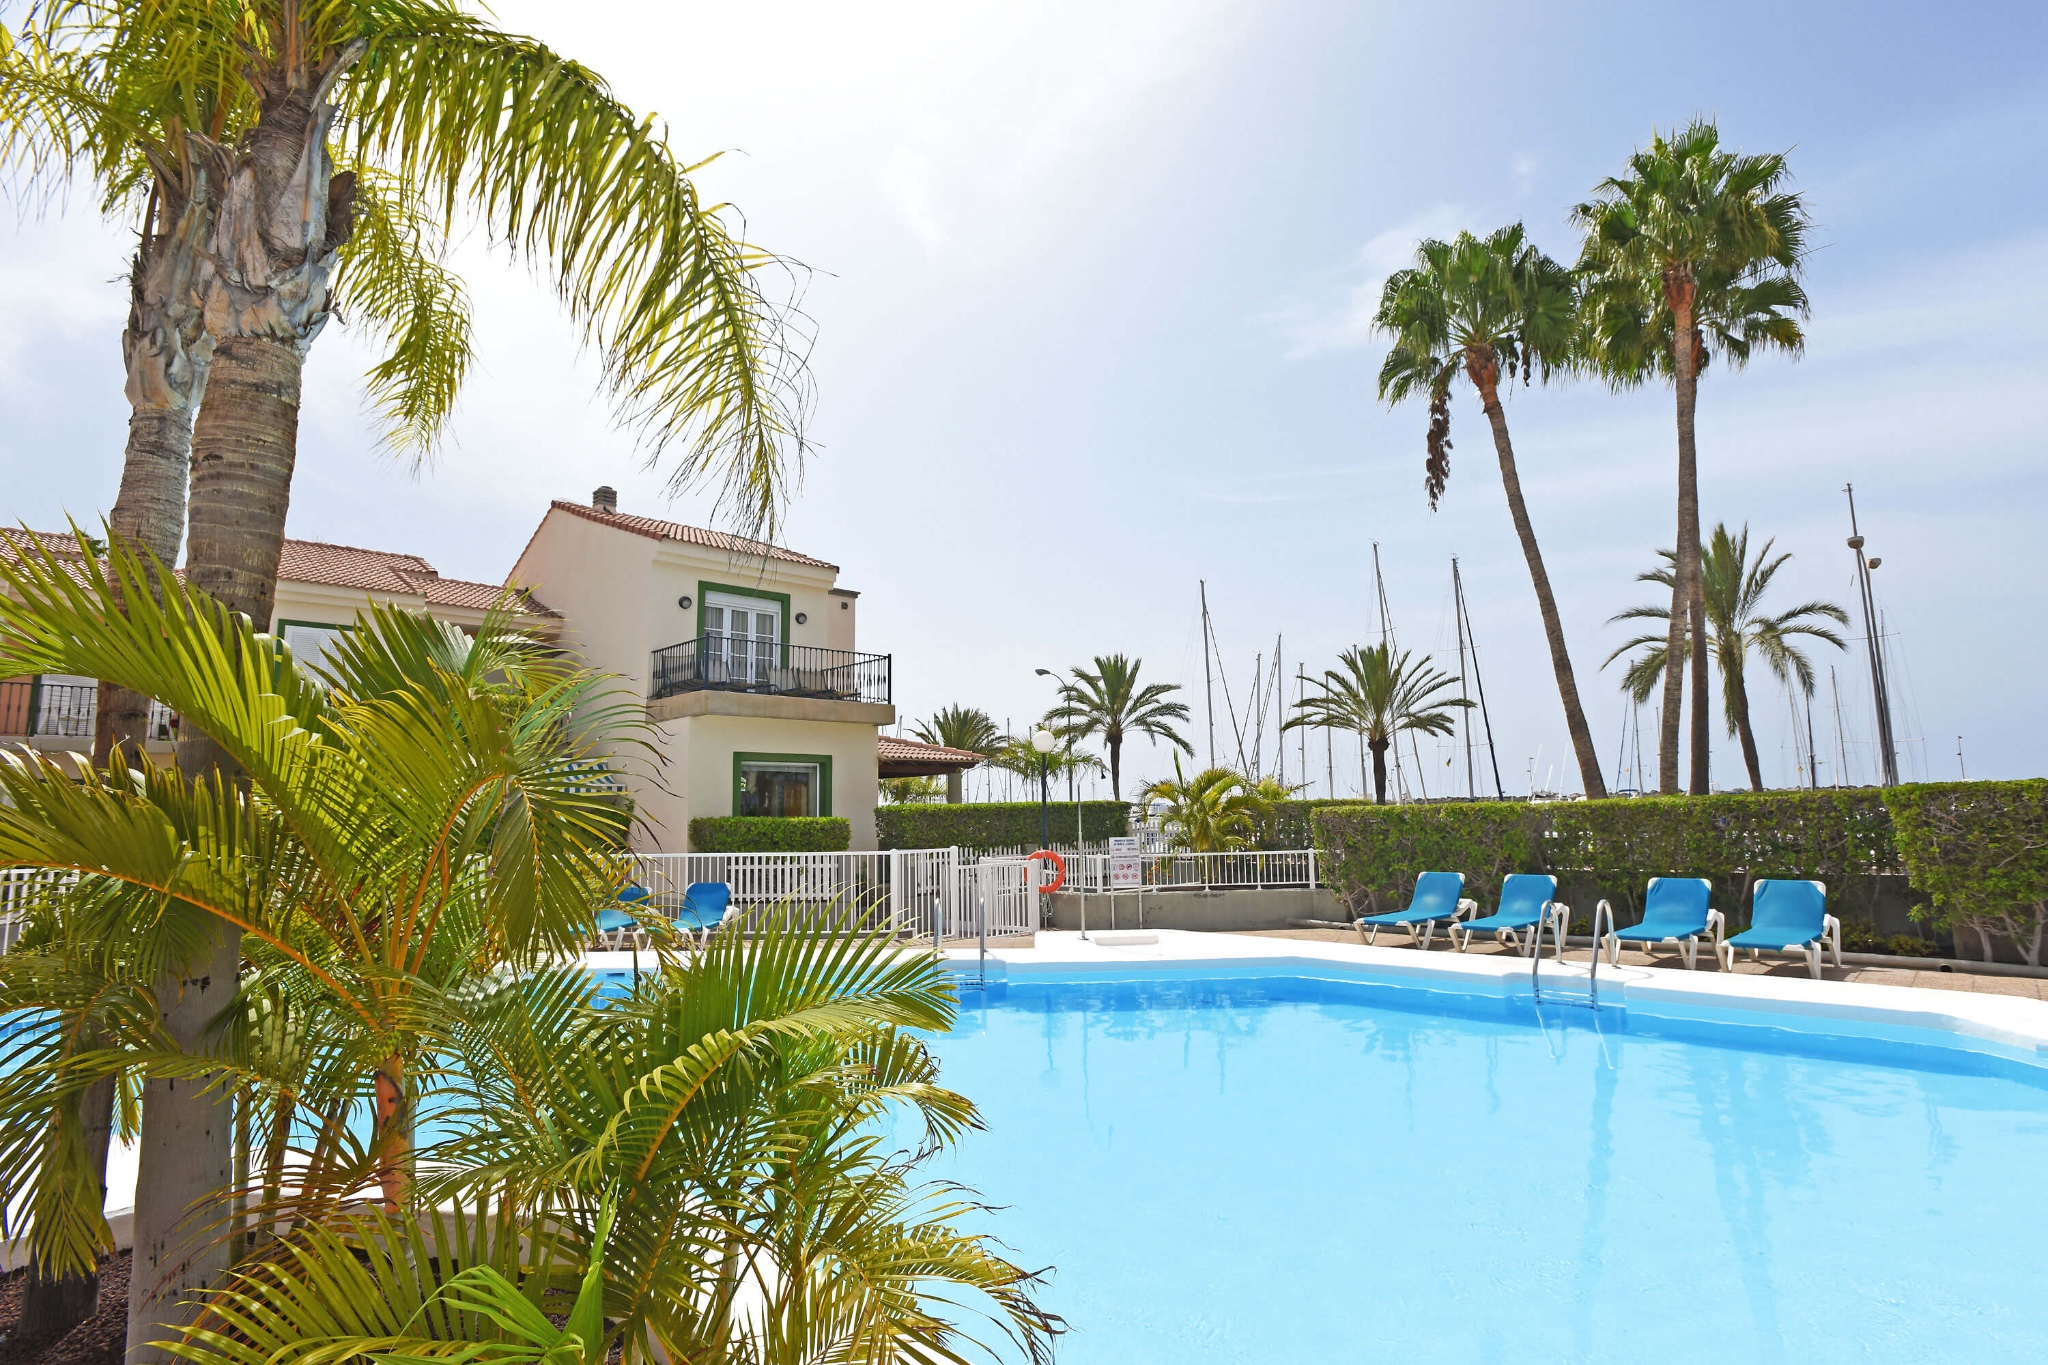 Very nice and comfortable holiday home by the sea in the well-kept complex of the Pasito Blanco marina in the south of Gran Canaria